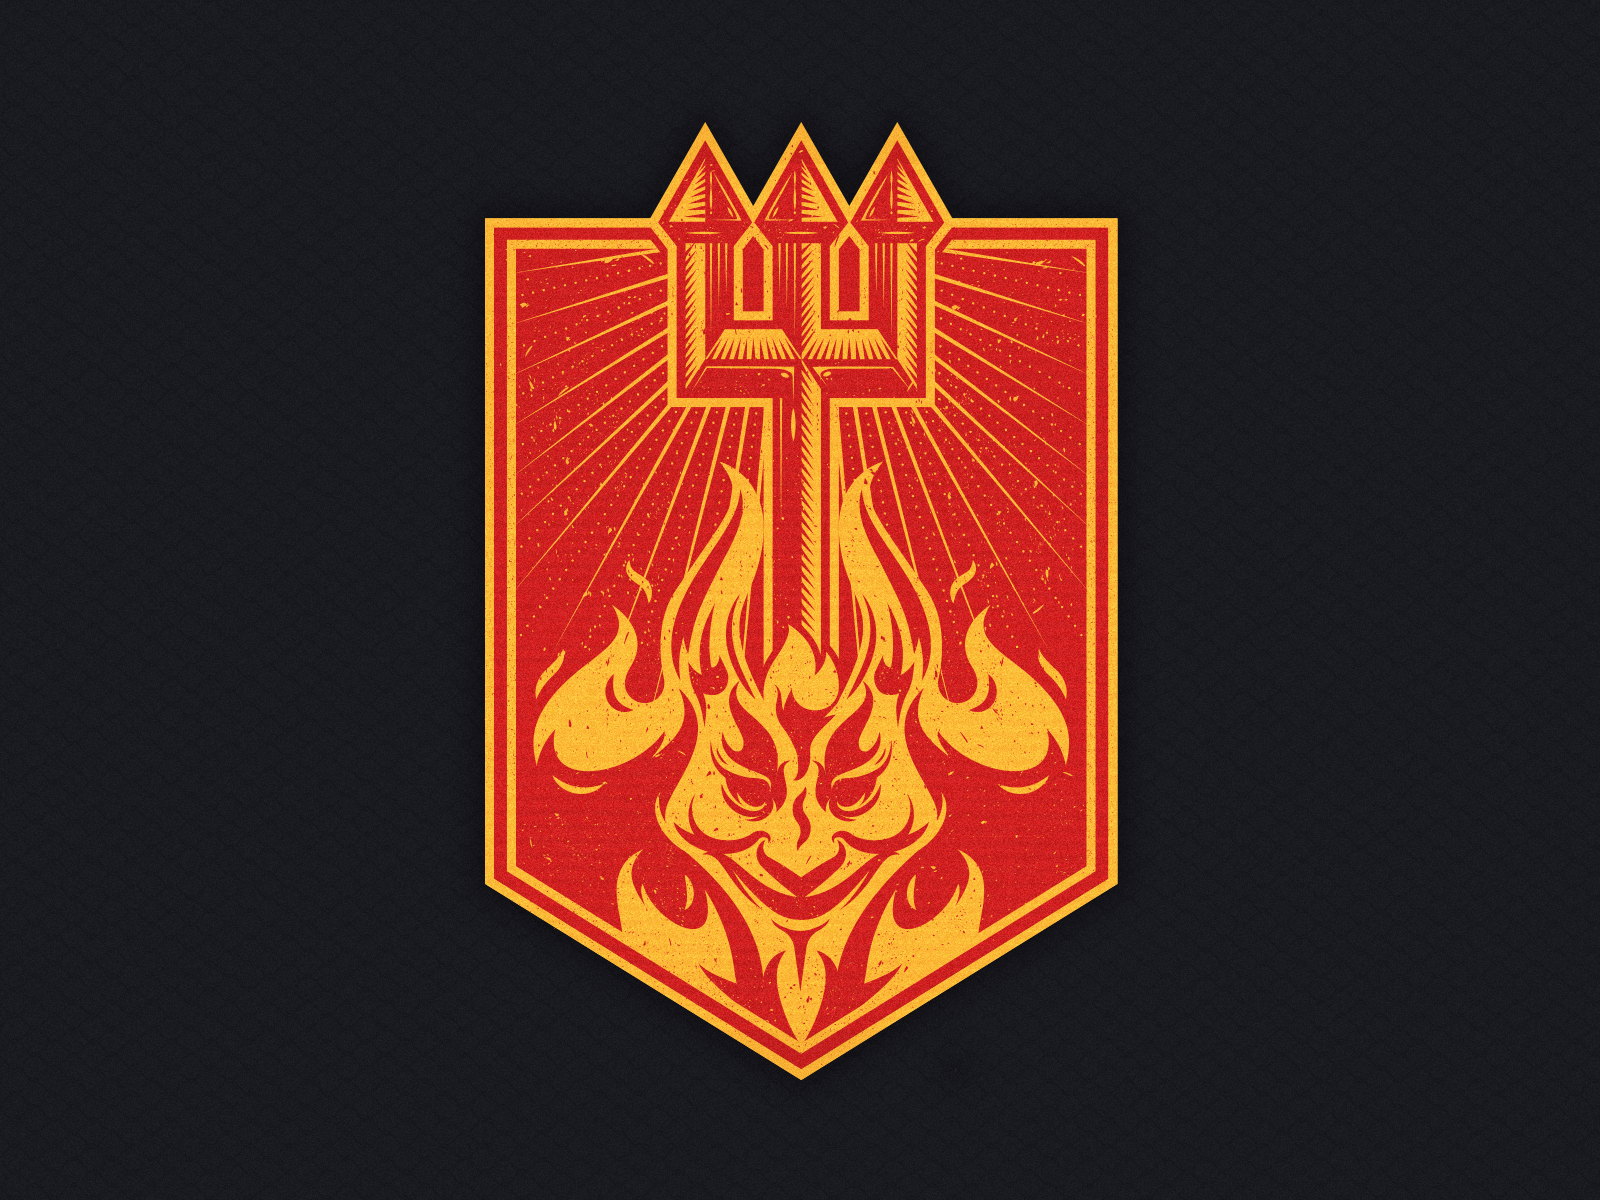 Manchester United Badge By Michal Ruchel On Dribbble